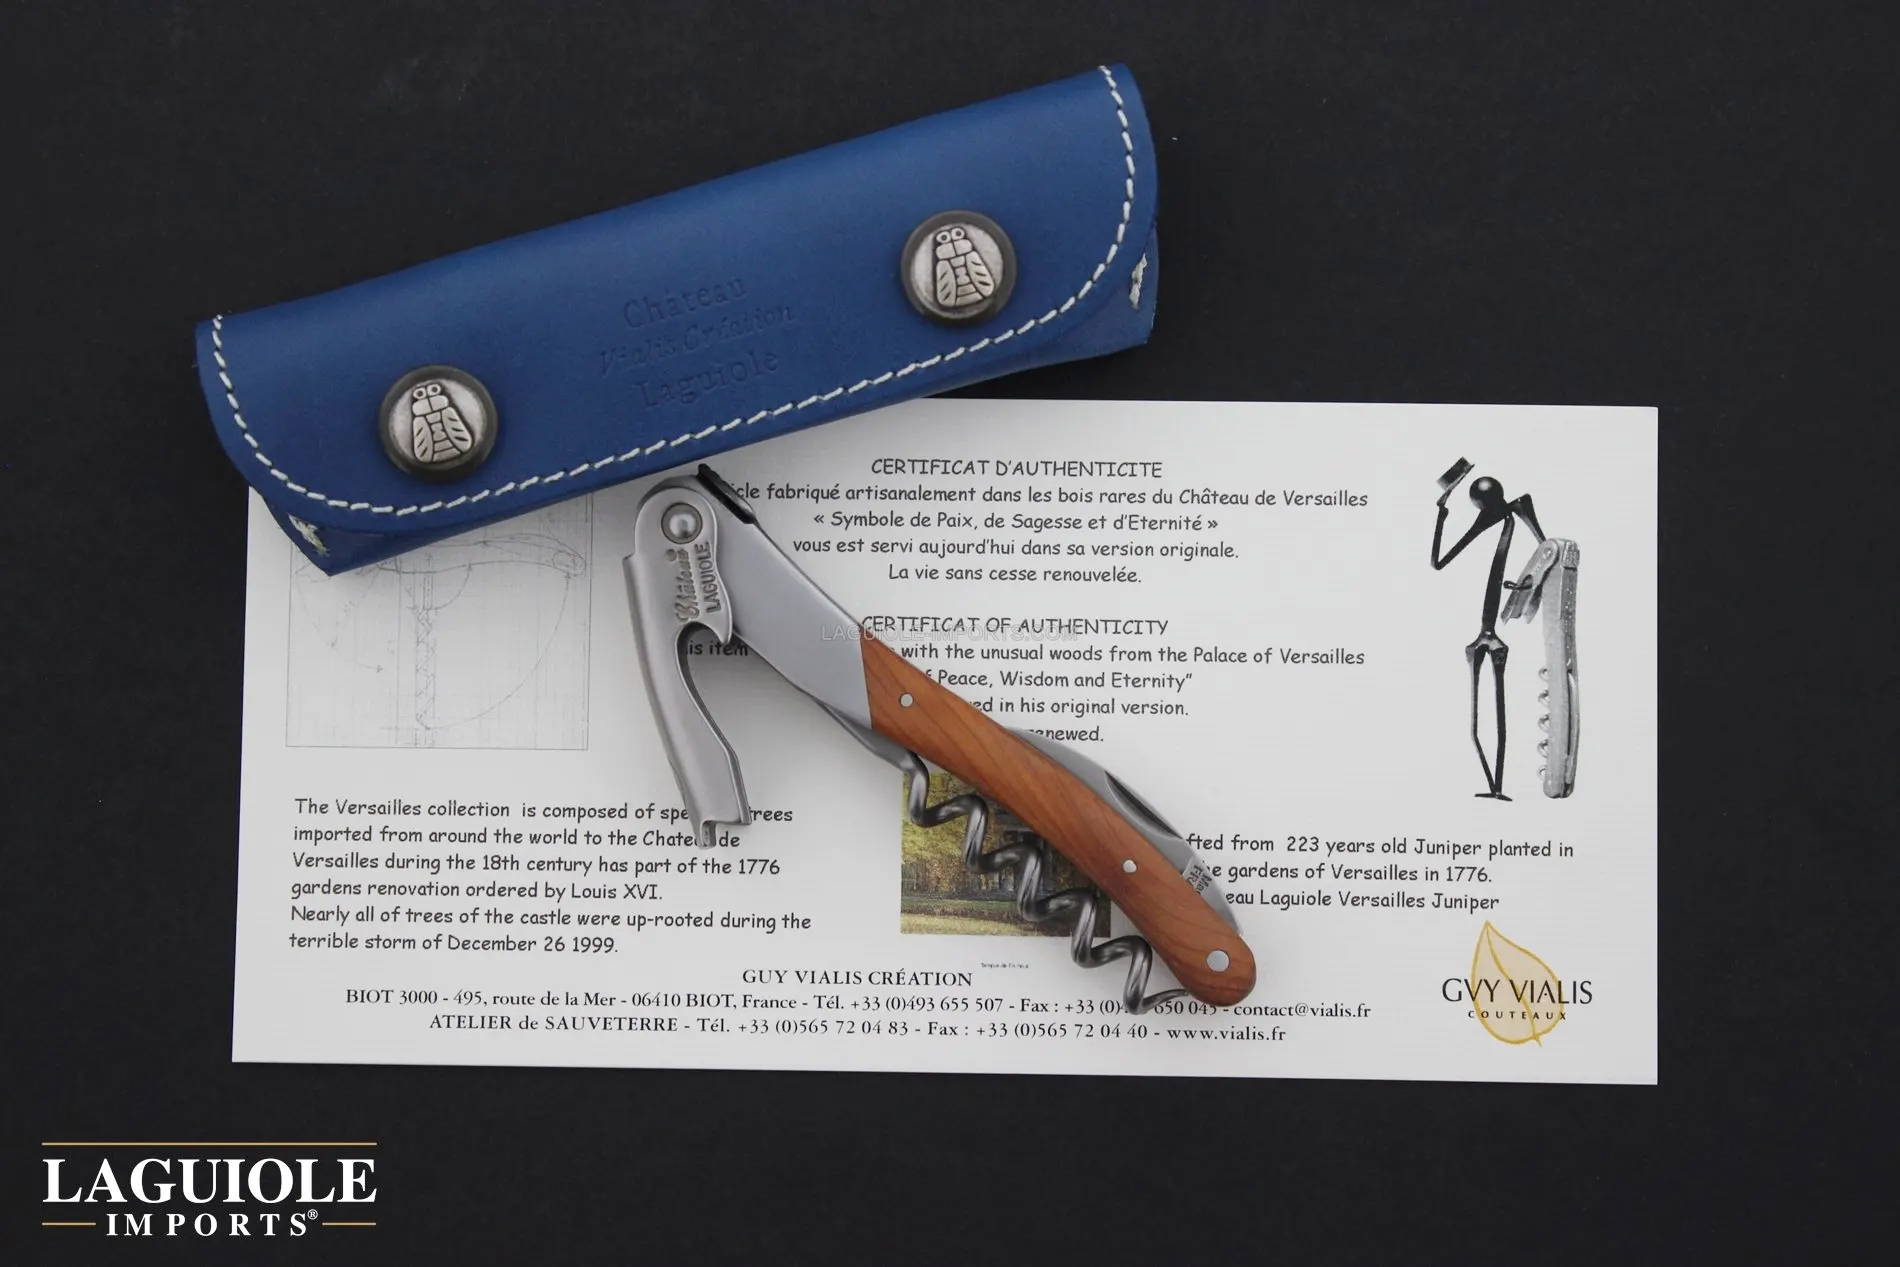 Chateau Laguiole Versailles Series - Juniper Handle - 223 years old wood